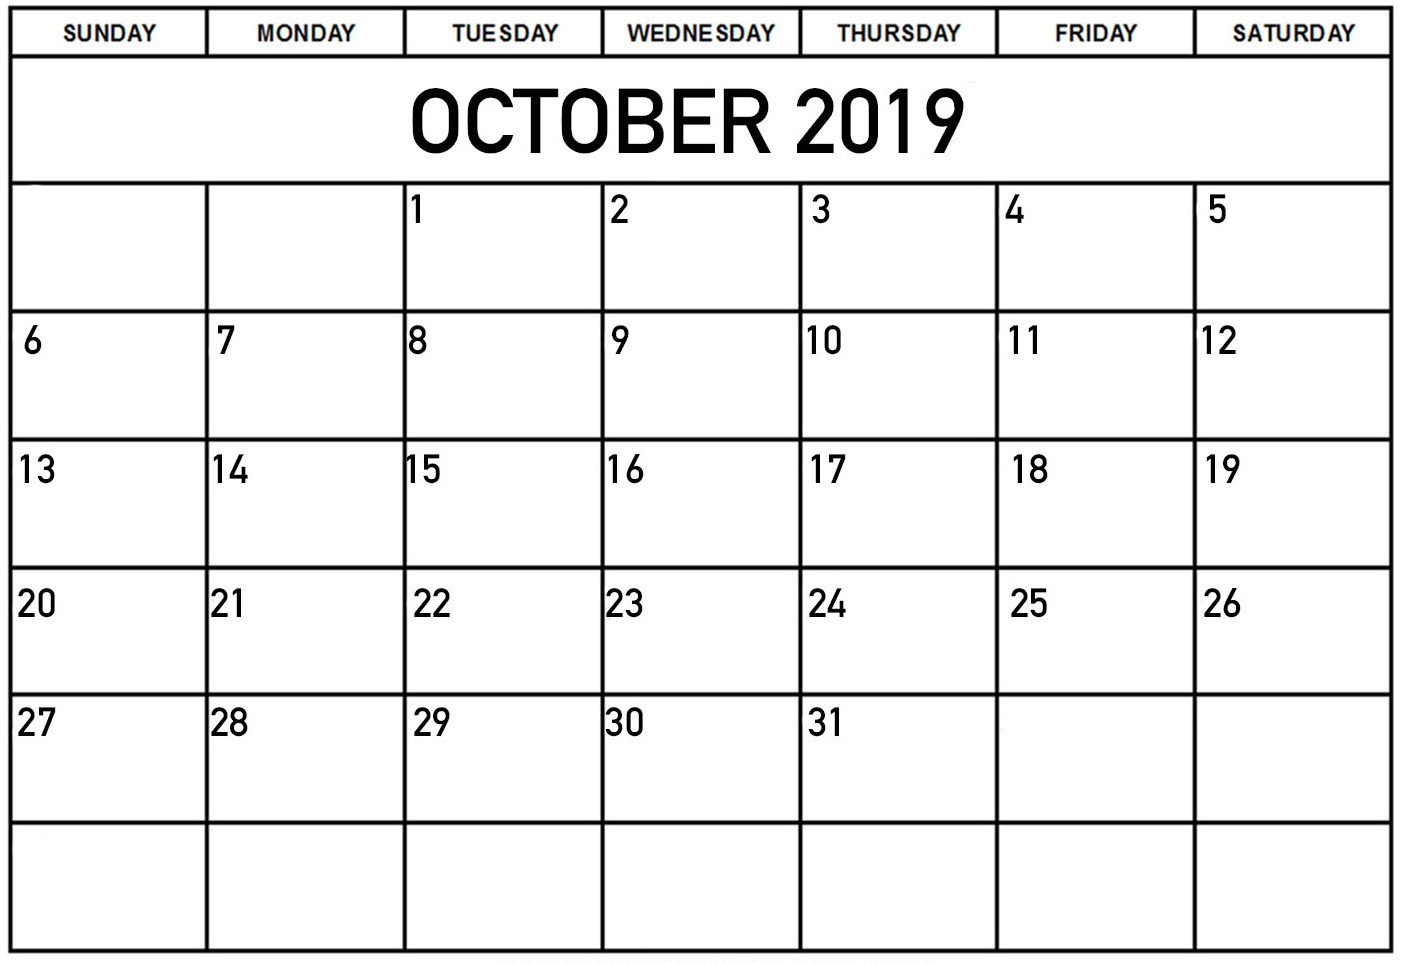 Personalized October 2019 Calendar